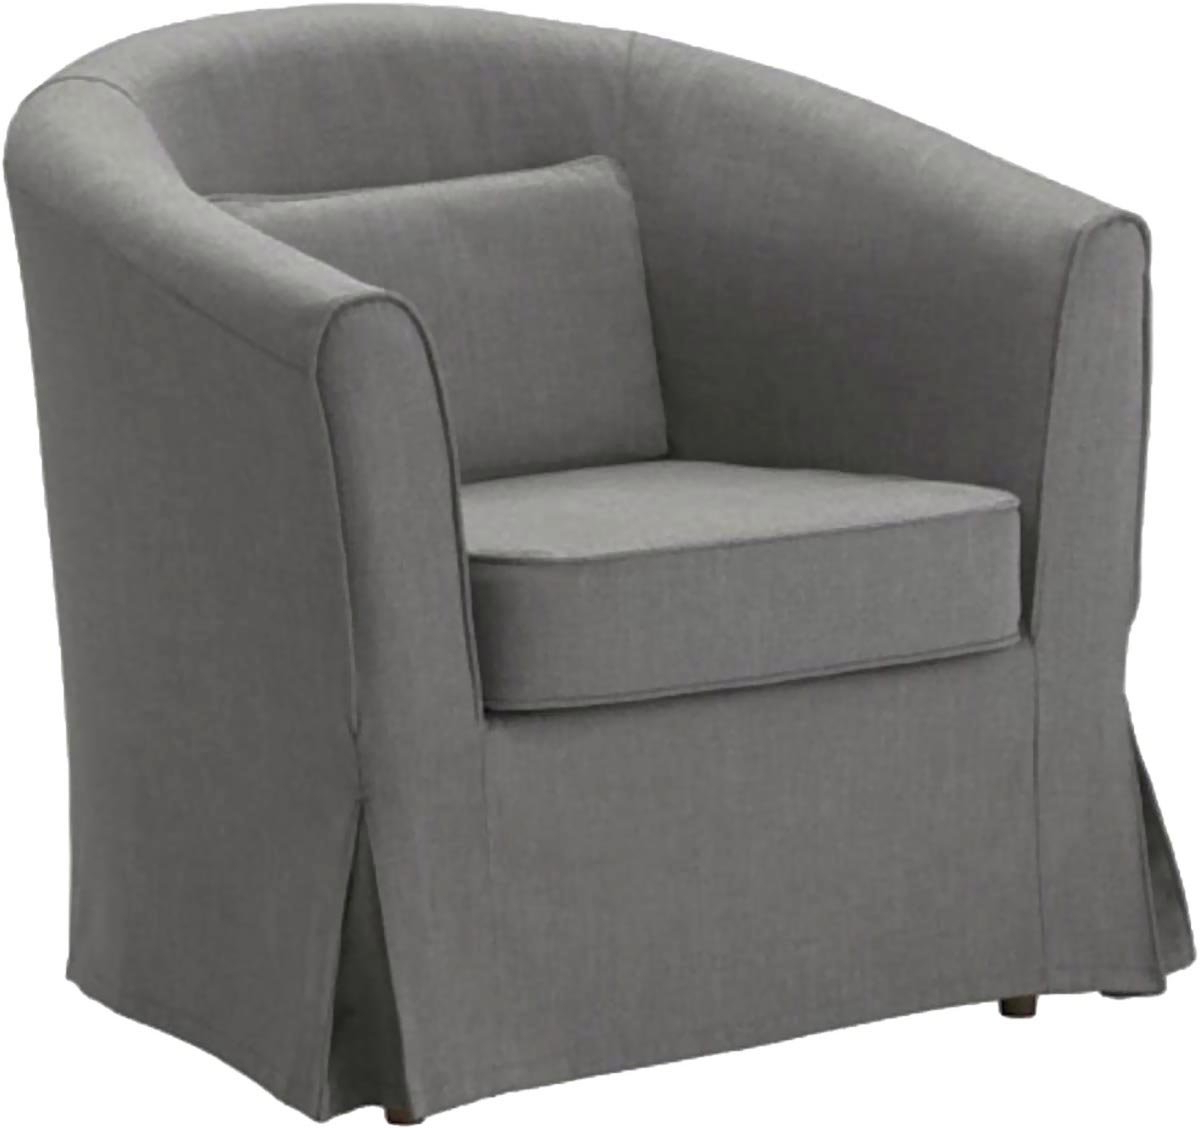 Popular Ringwold Armchairs With Regard To Cheap Ikea Childs Chair, Find Ikea Childs Chair Deals On (View 14 of 20)